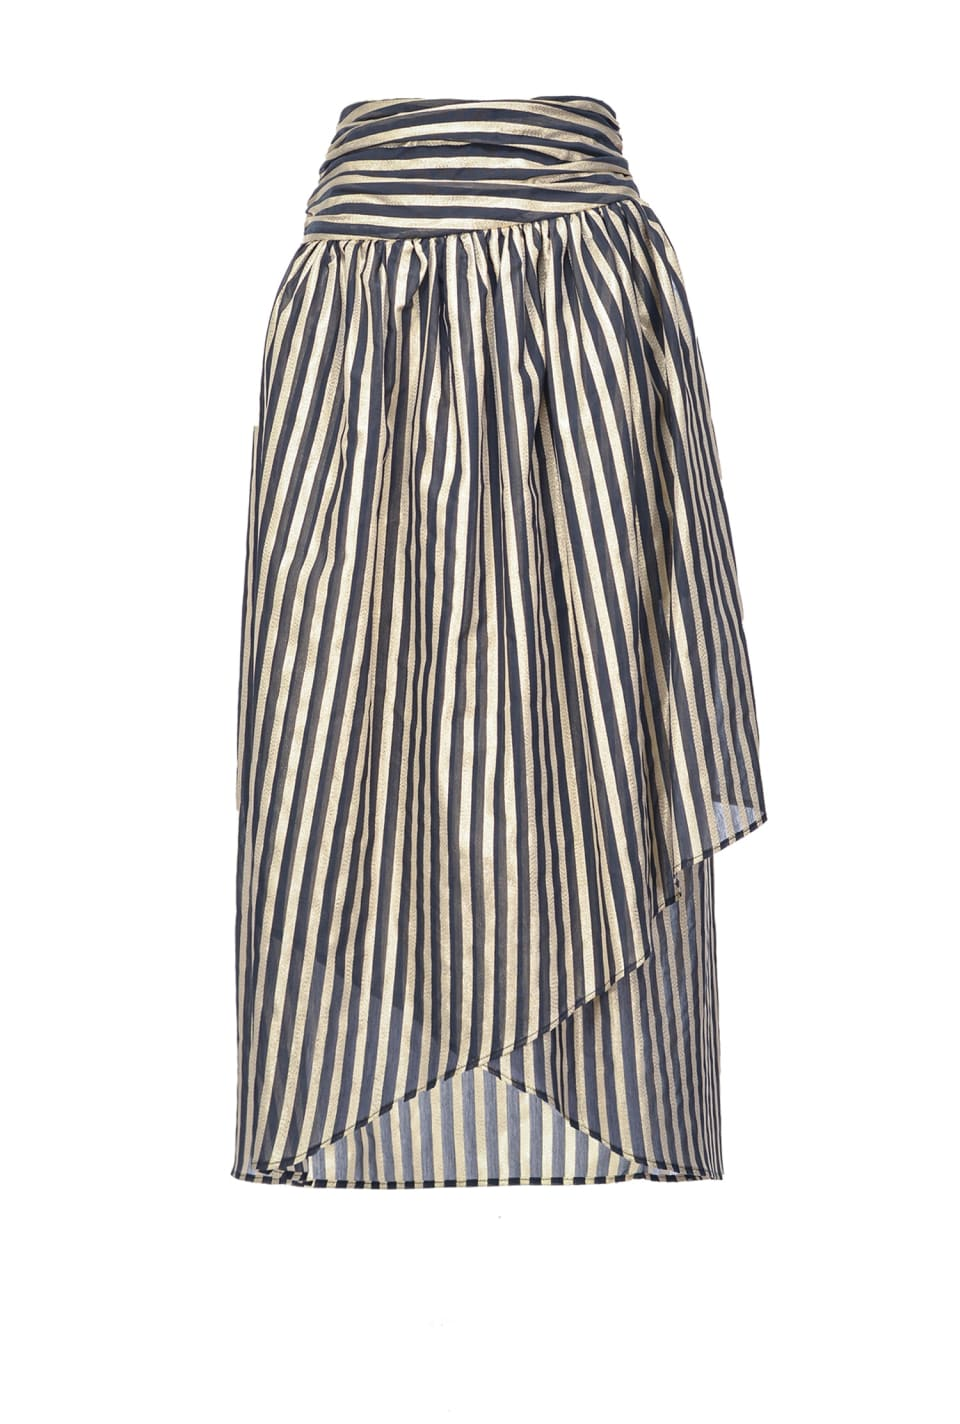 Lurex striped skirt